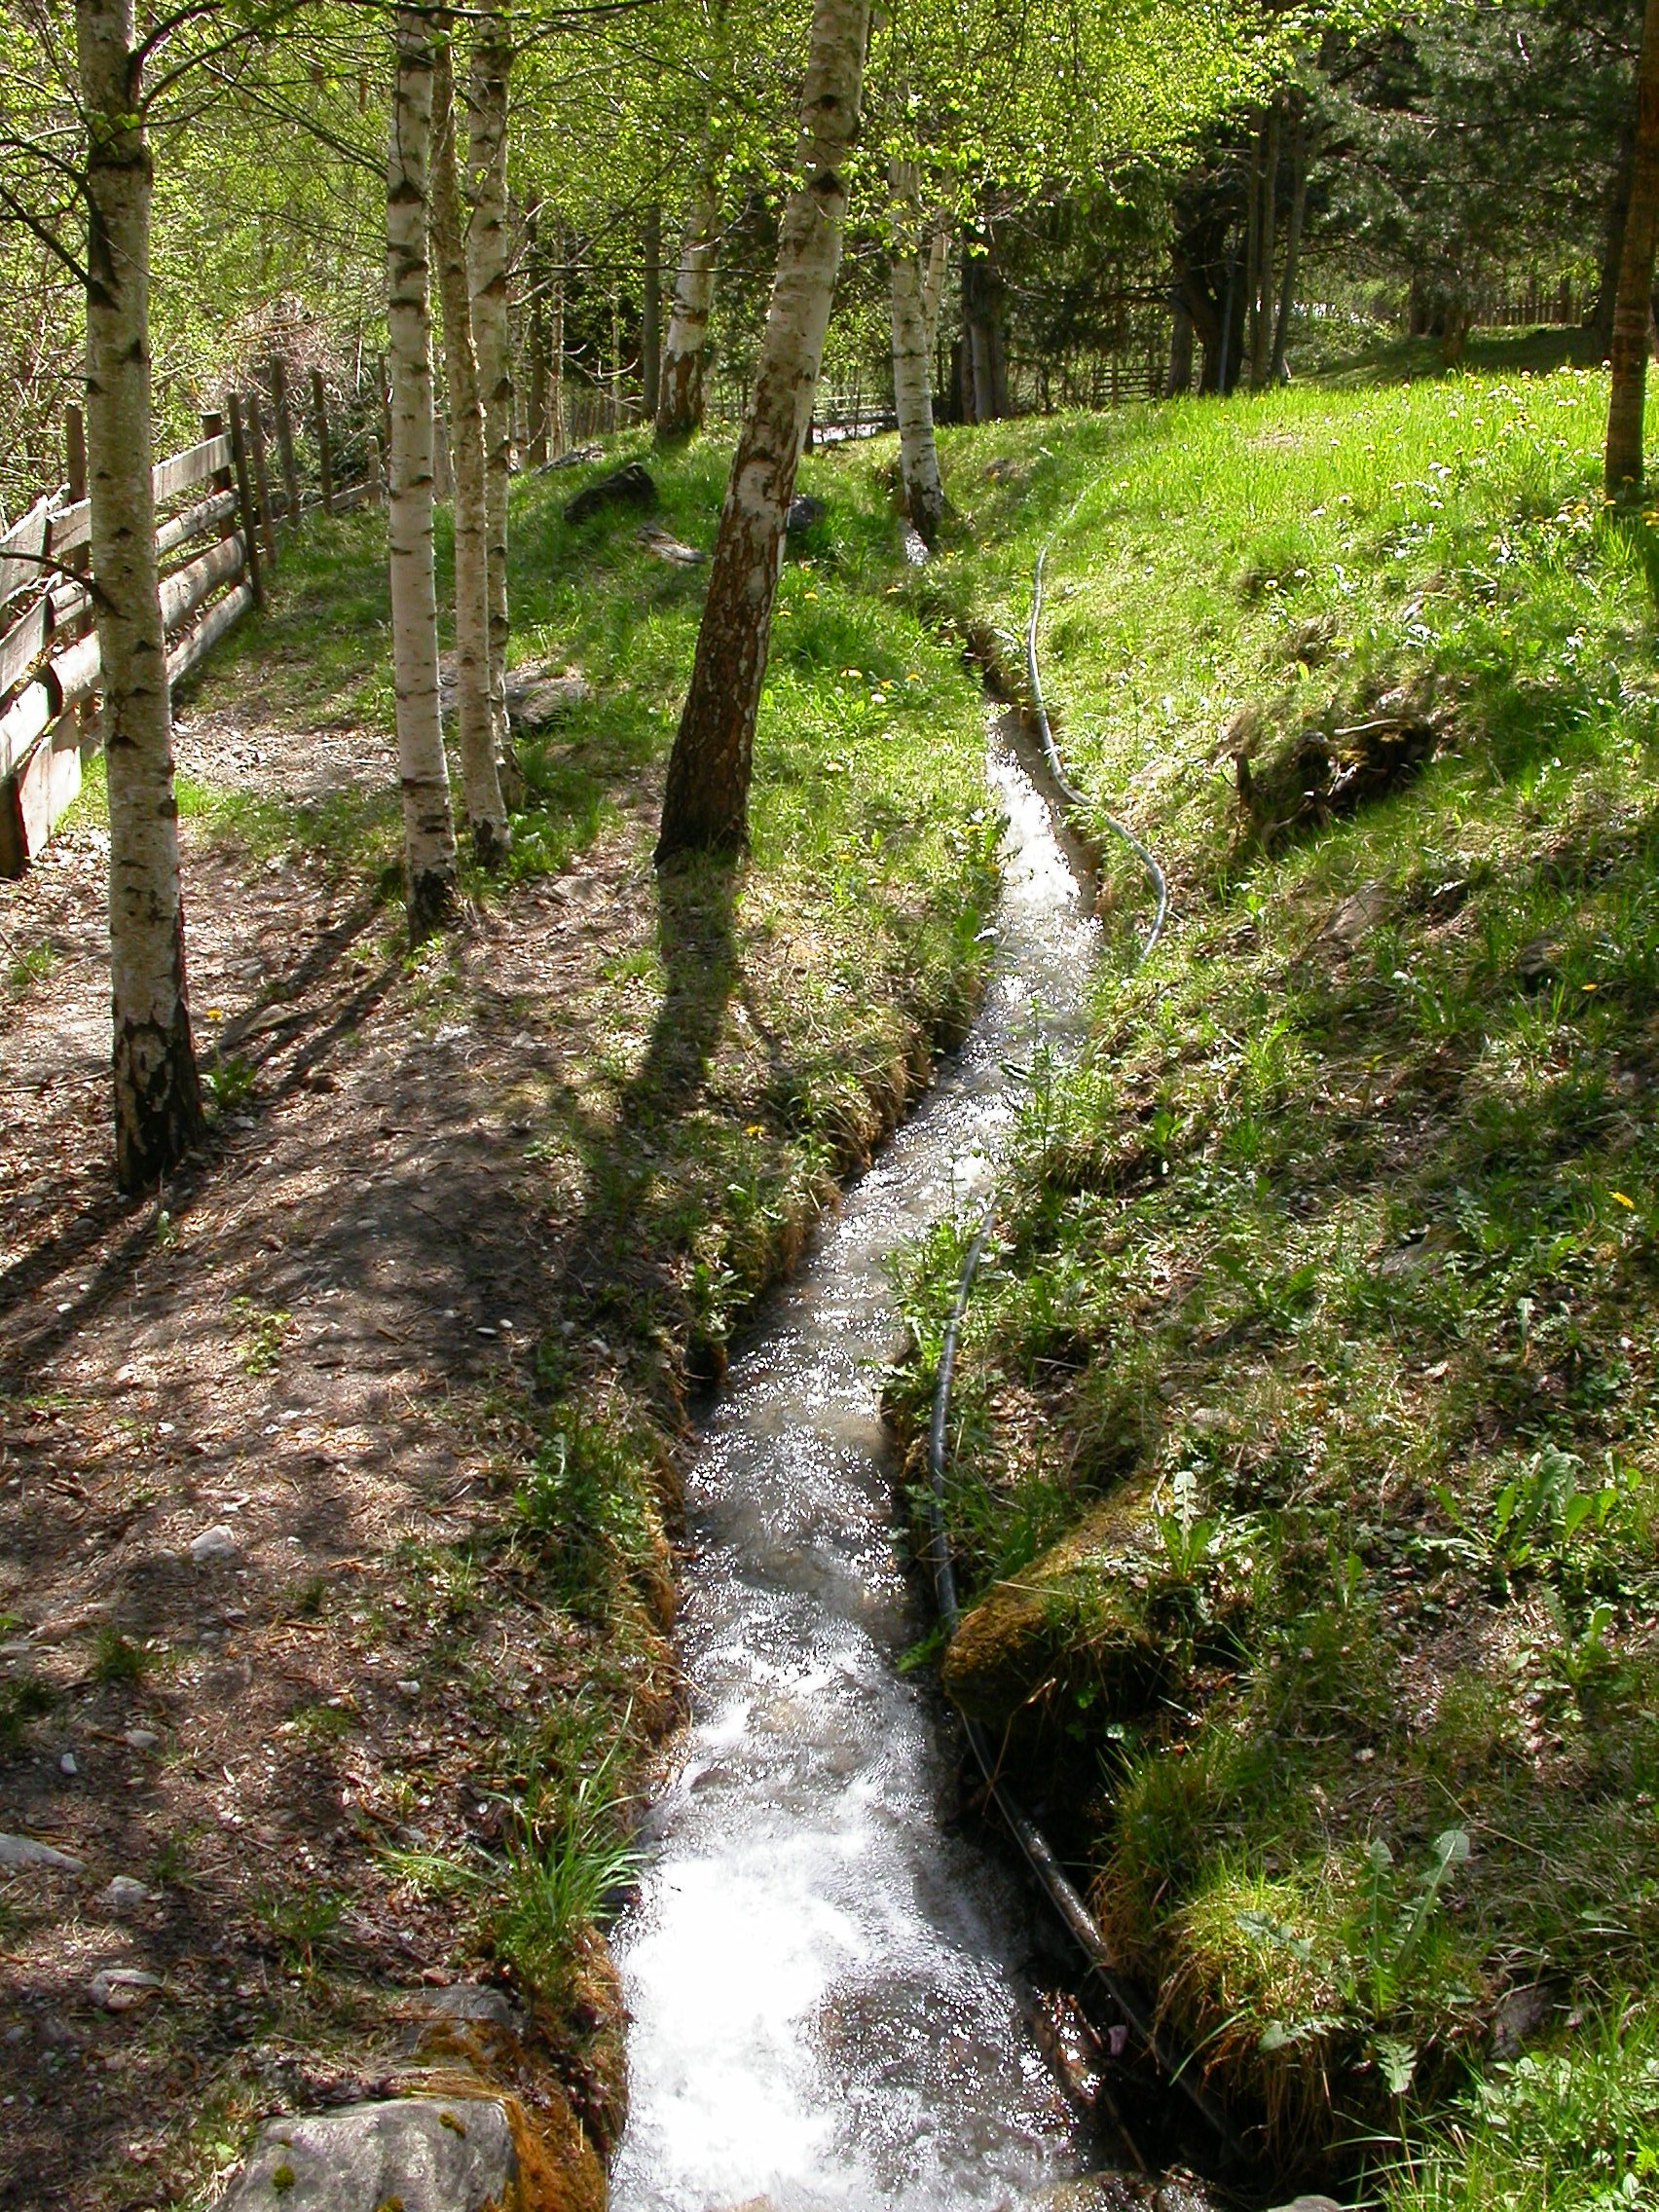 paul brook stream meander meandering small little woods grass slope trees